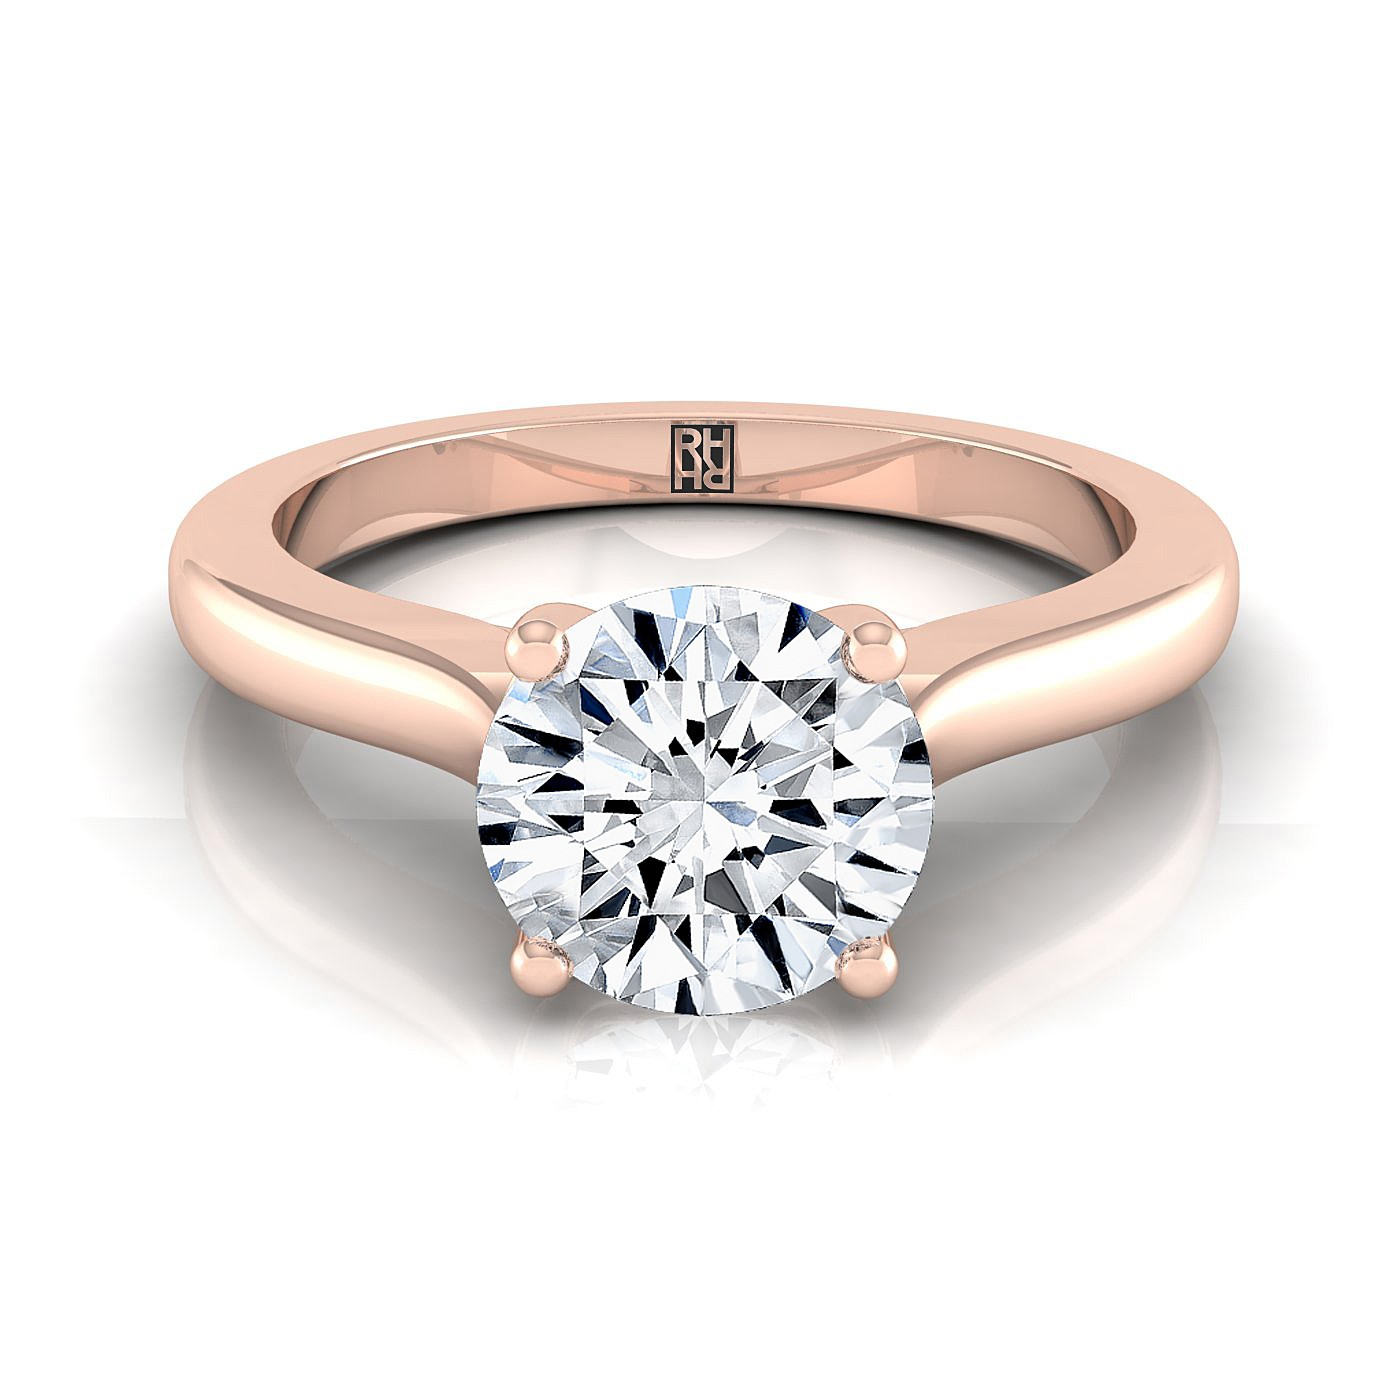 watch gold rounded dainty wedding band rose diamond in youtube